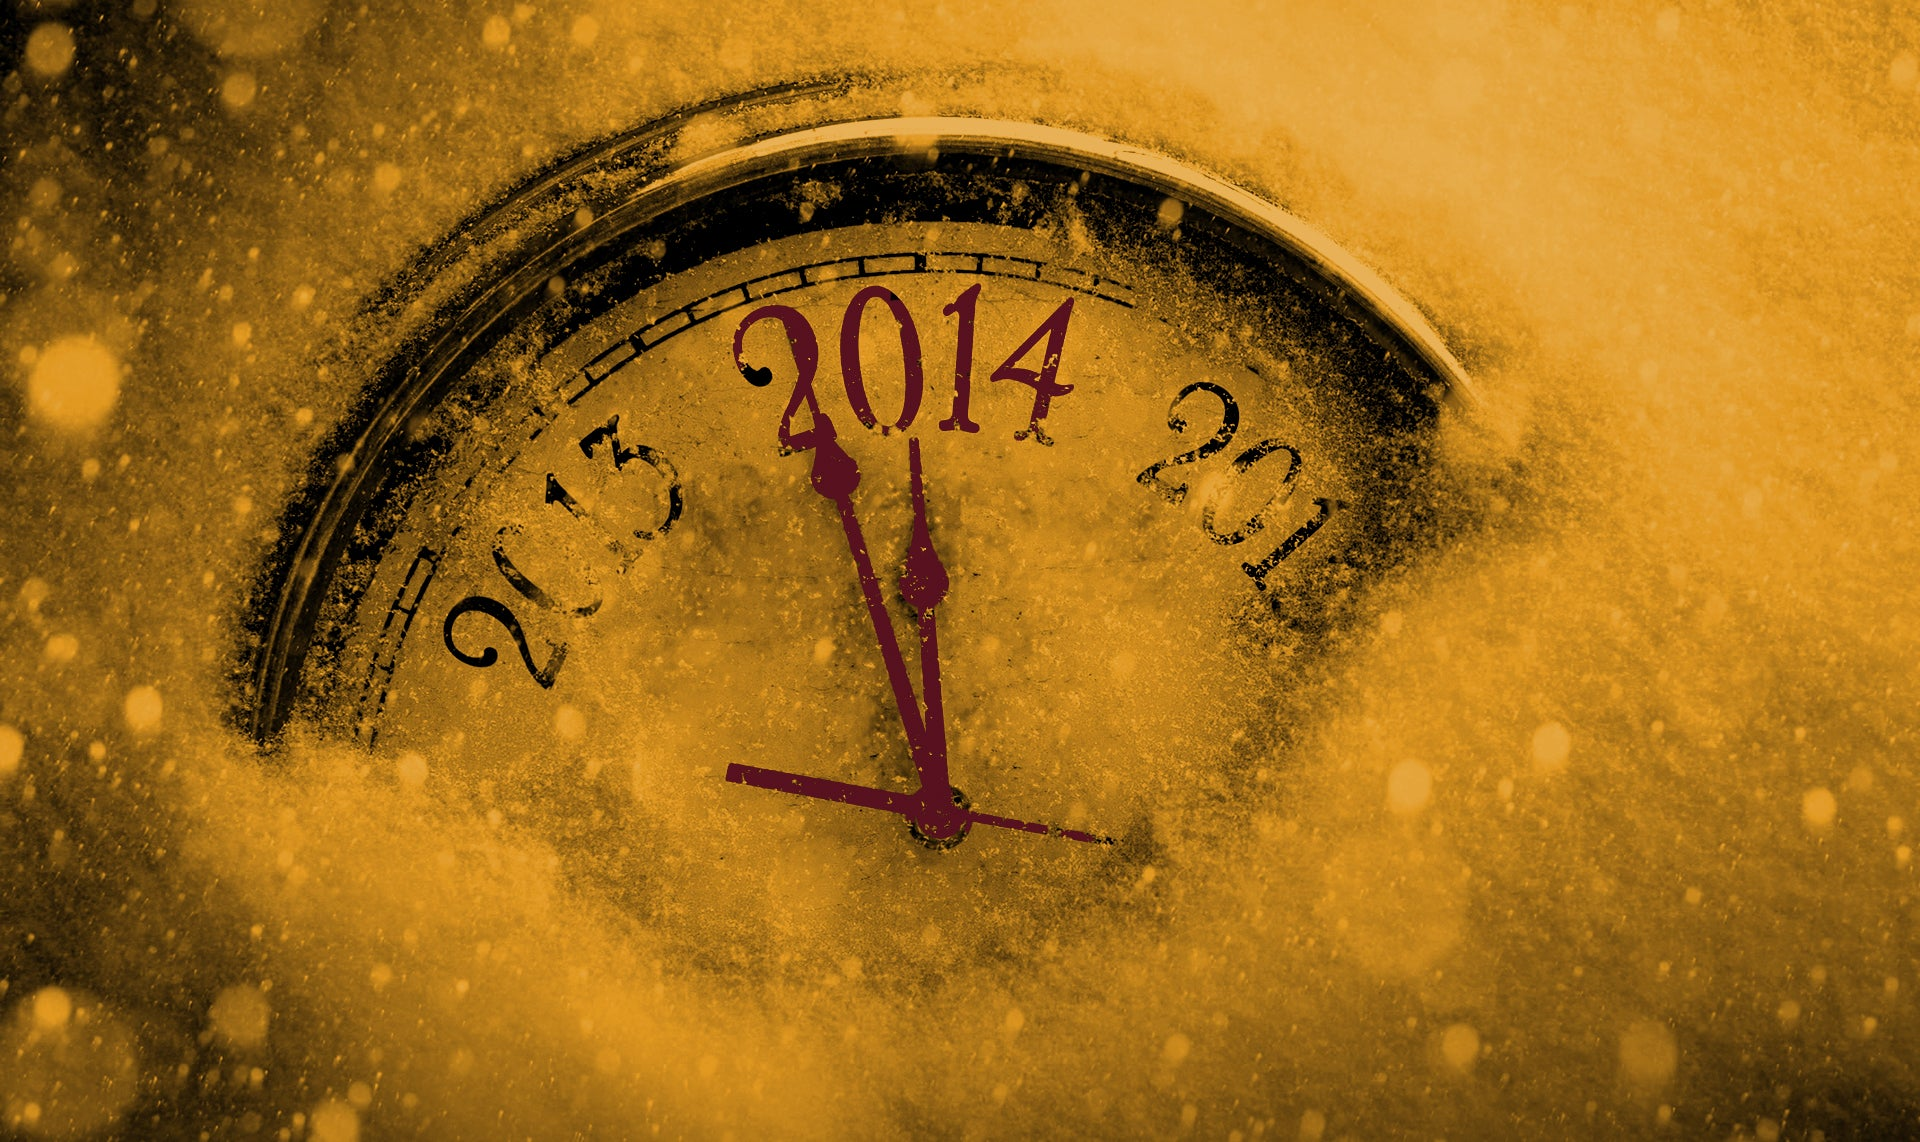 Timeclock closing in on the end of 2014